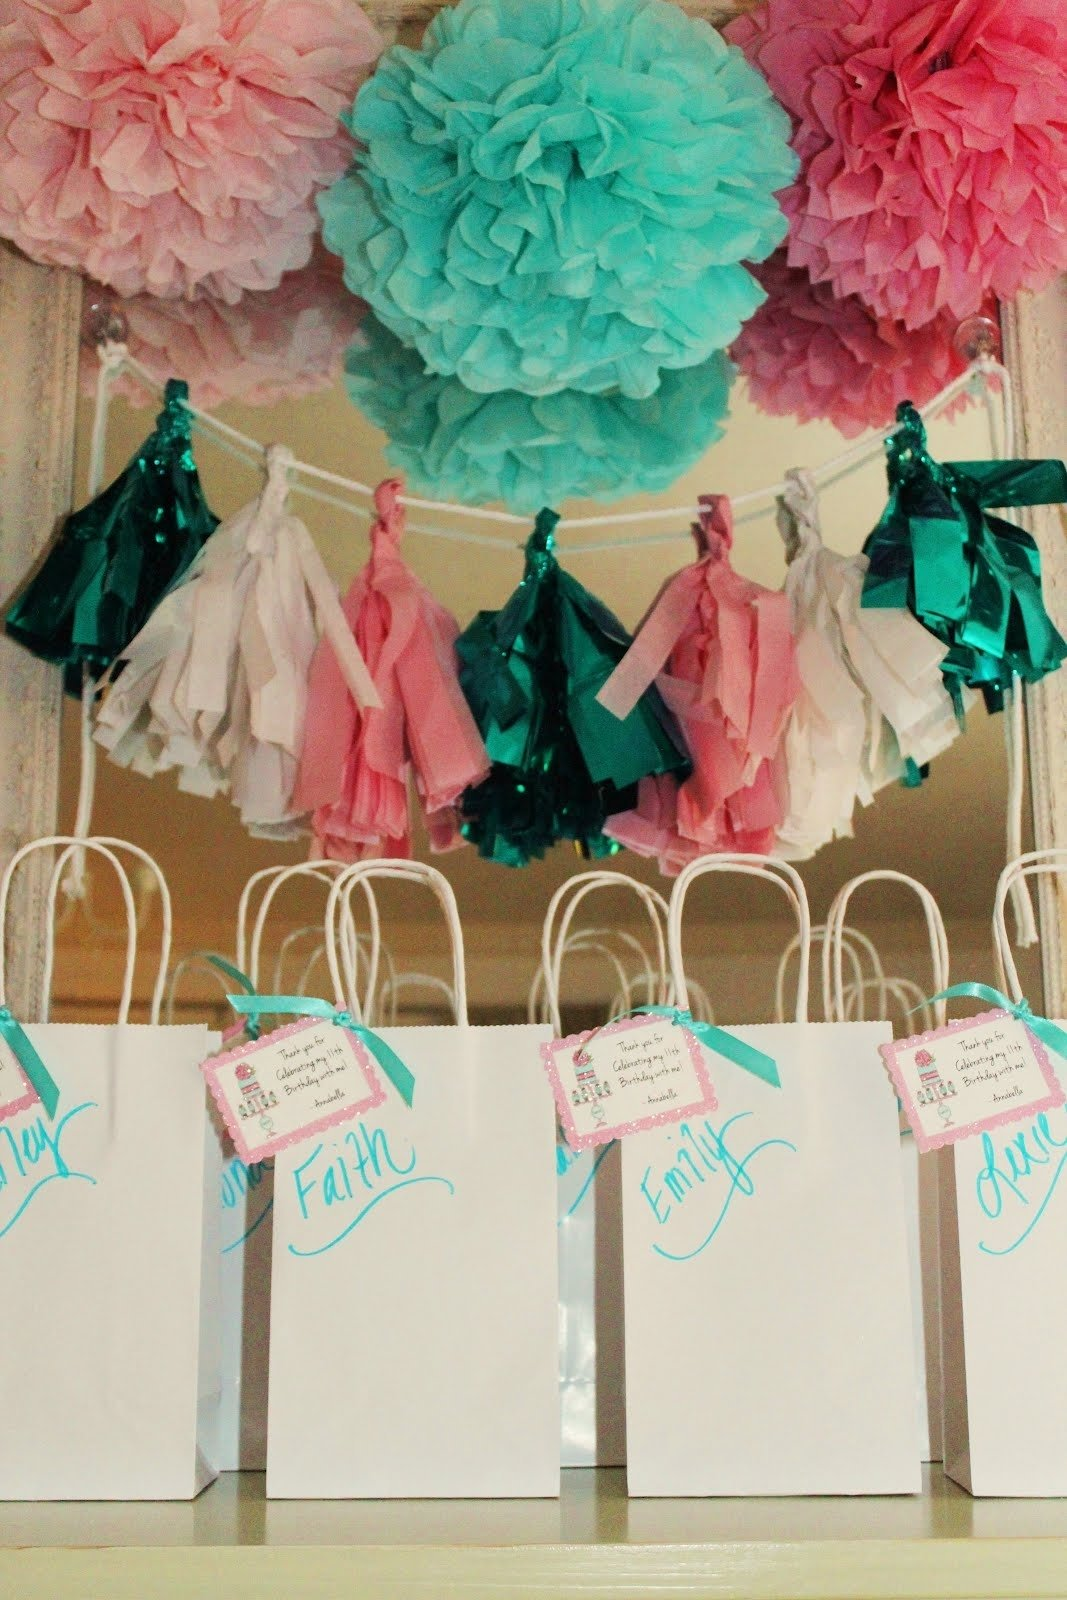 10 Stylish 11 Year Old Birthday Party Ideas For Girls themes birthday 6 year old boy birthday party ideas at home in best 29 2020